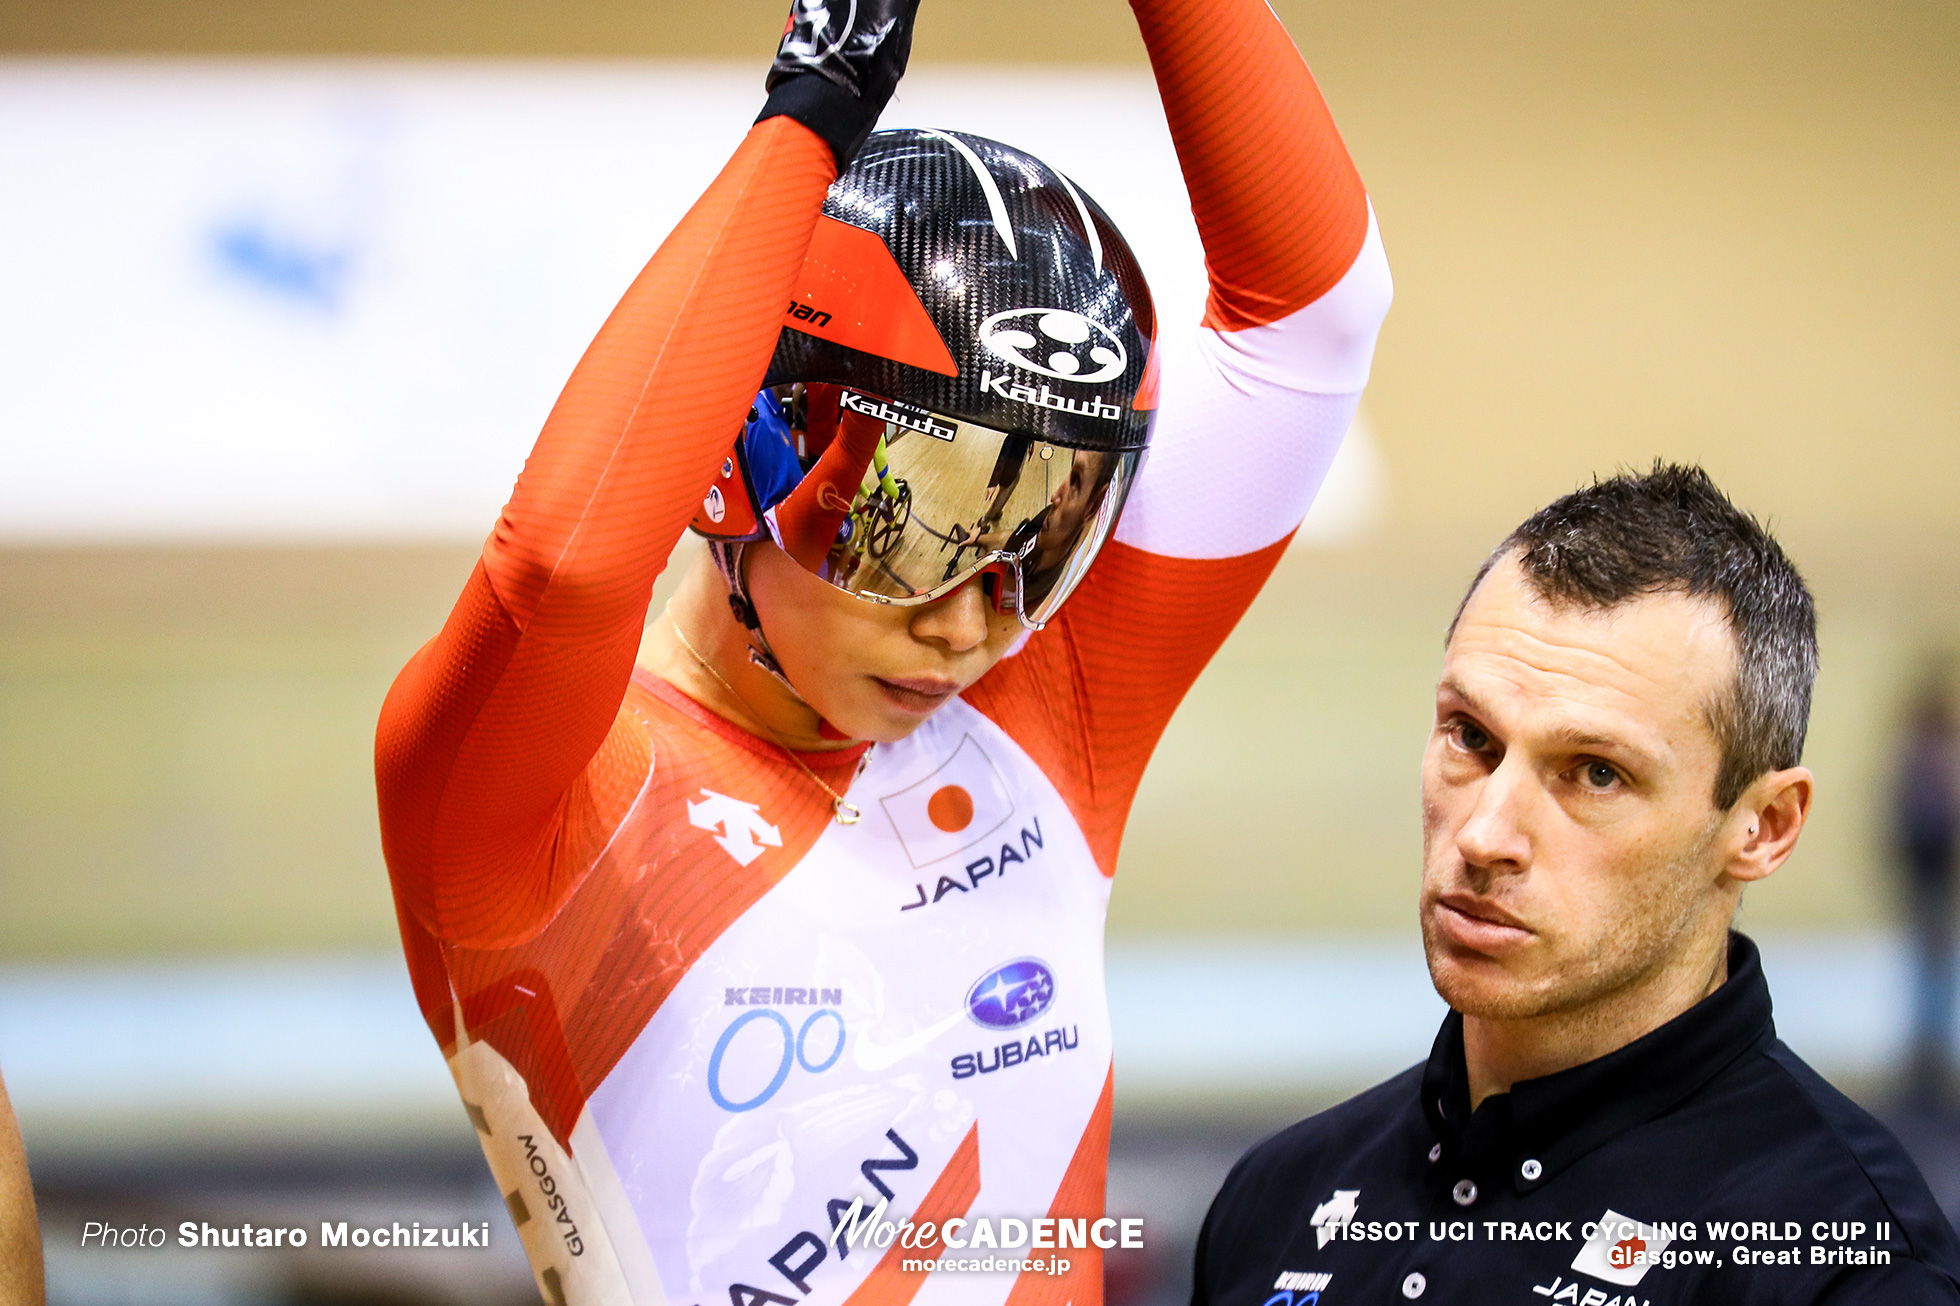 1st Round / Women's Keirin / TISSOT UCI TRACK CYCLING WORLD CUP II, Glasgow, Great Britain, 太田りゆ